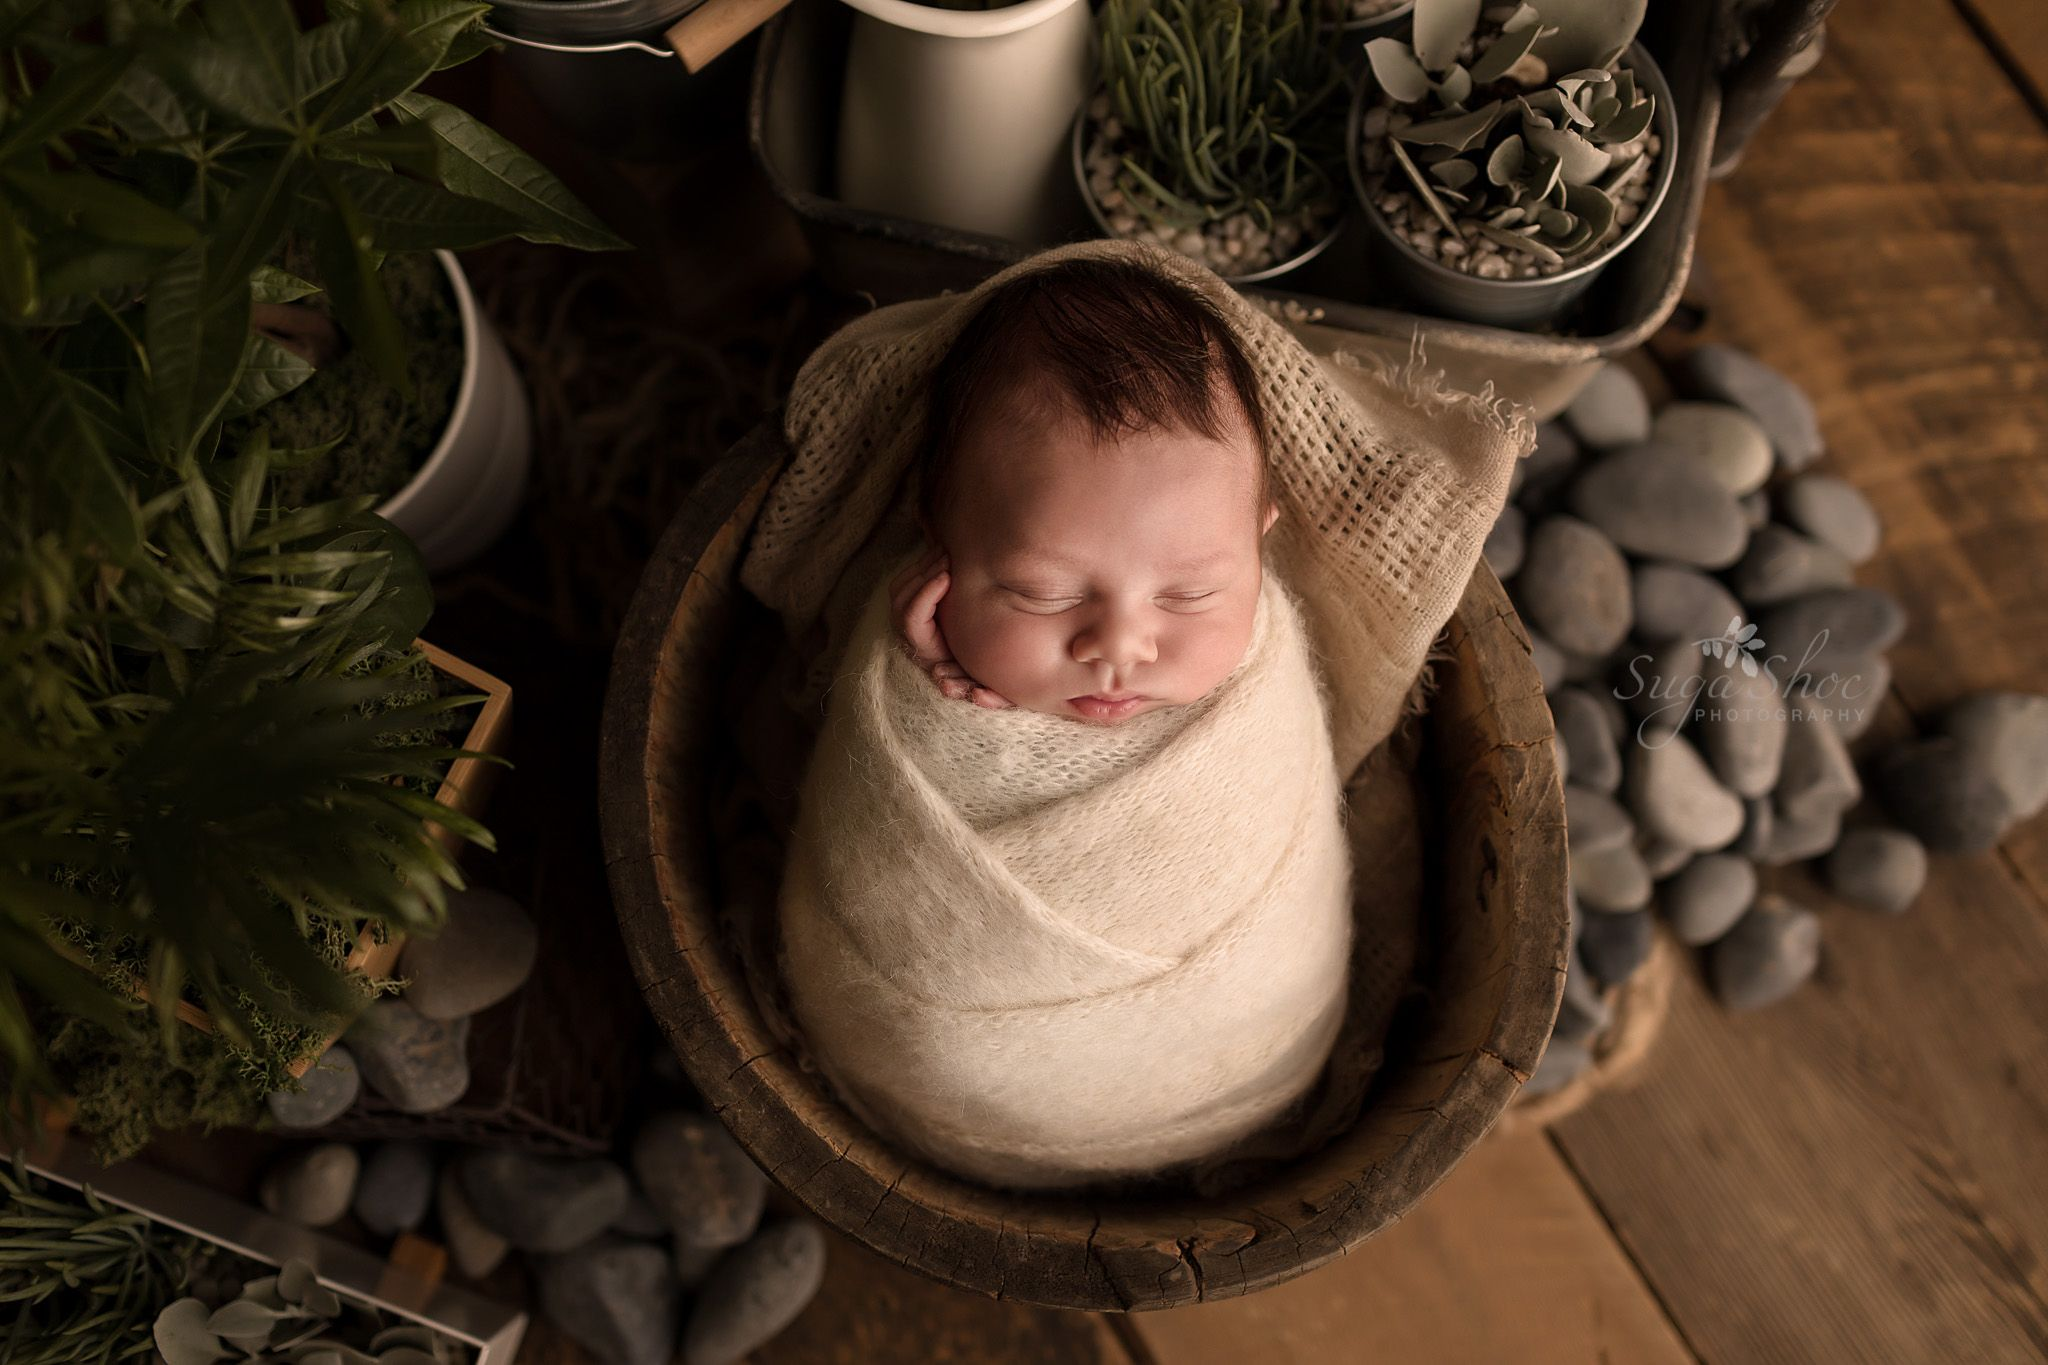 Newborn pose jungle theme baby wrapped up in wooden bucket with plants and rocks in background